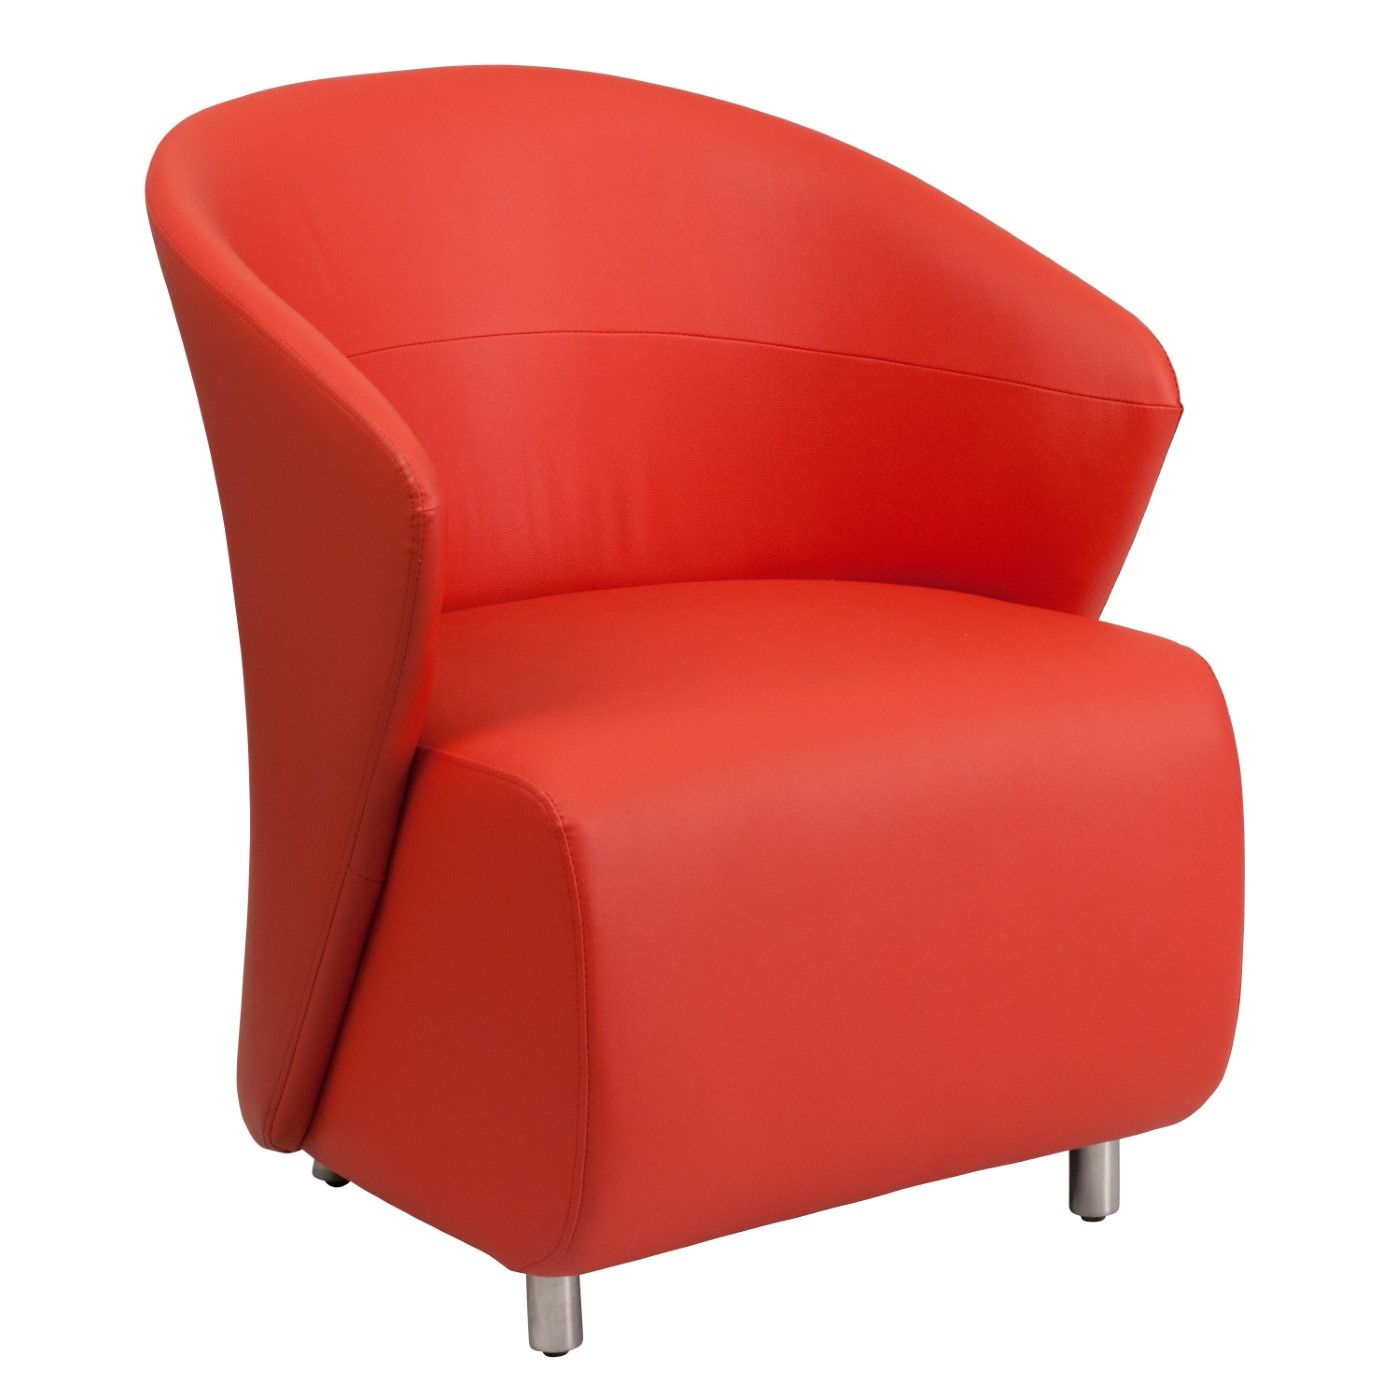 Red LeatherSoft Curved Barrel Back Lounge Chair